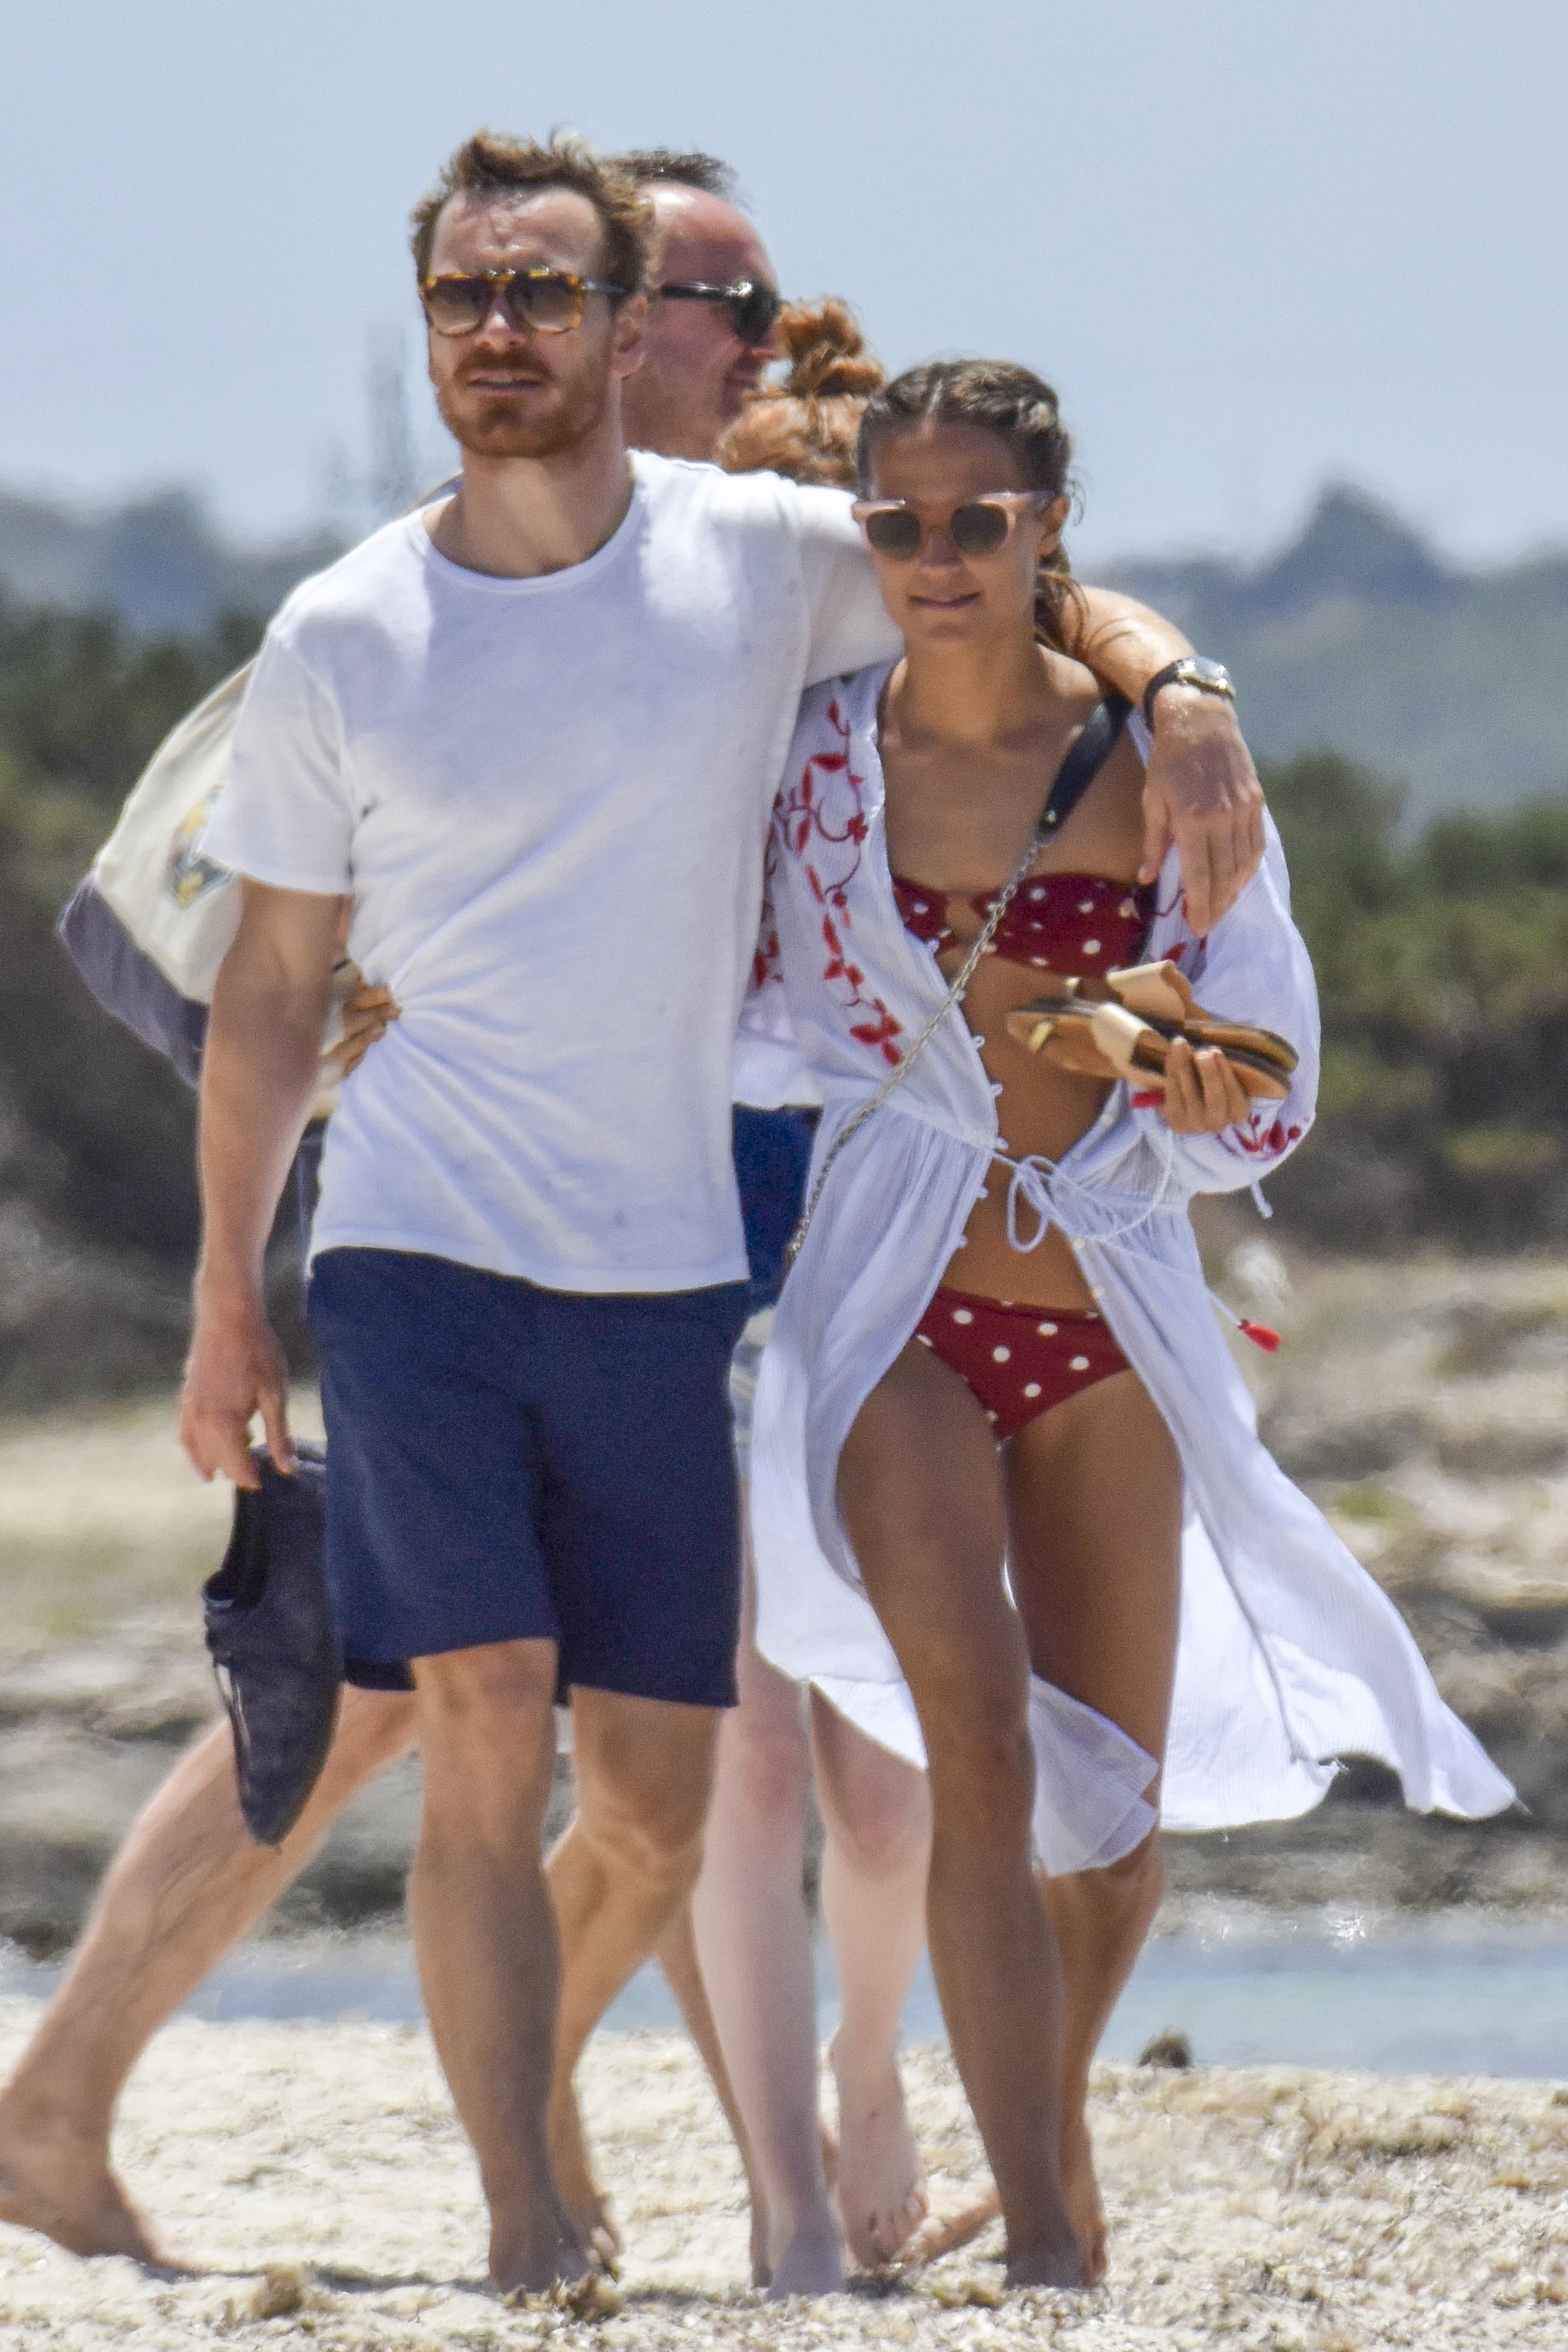 Alicia Vikander and Michael Fassbender wed in Ibiza